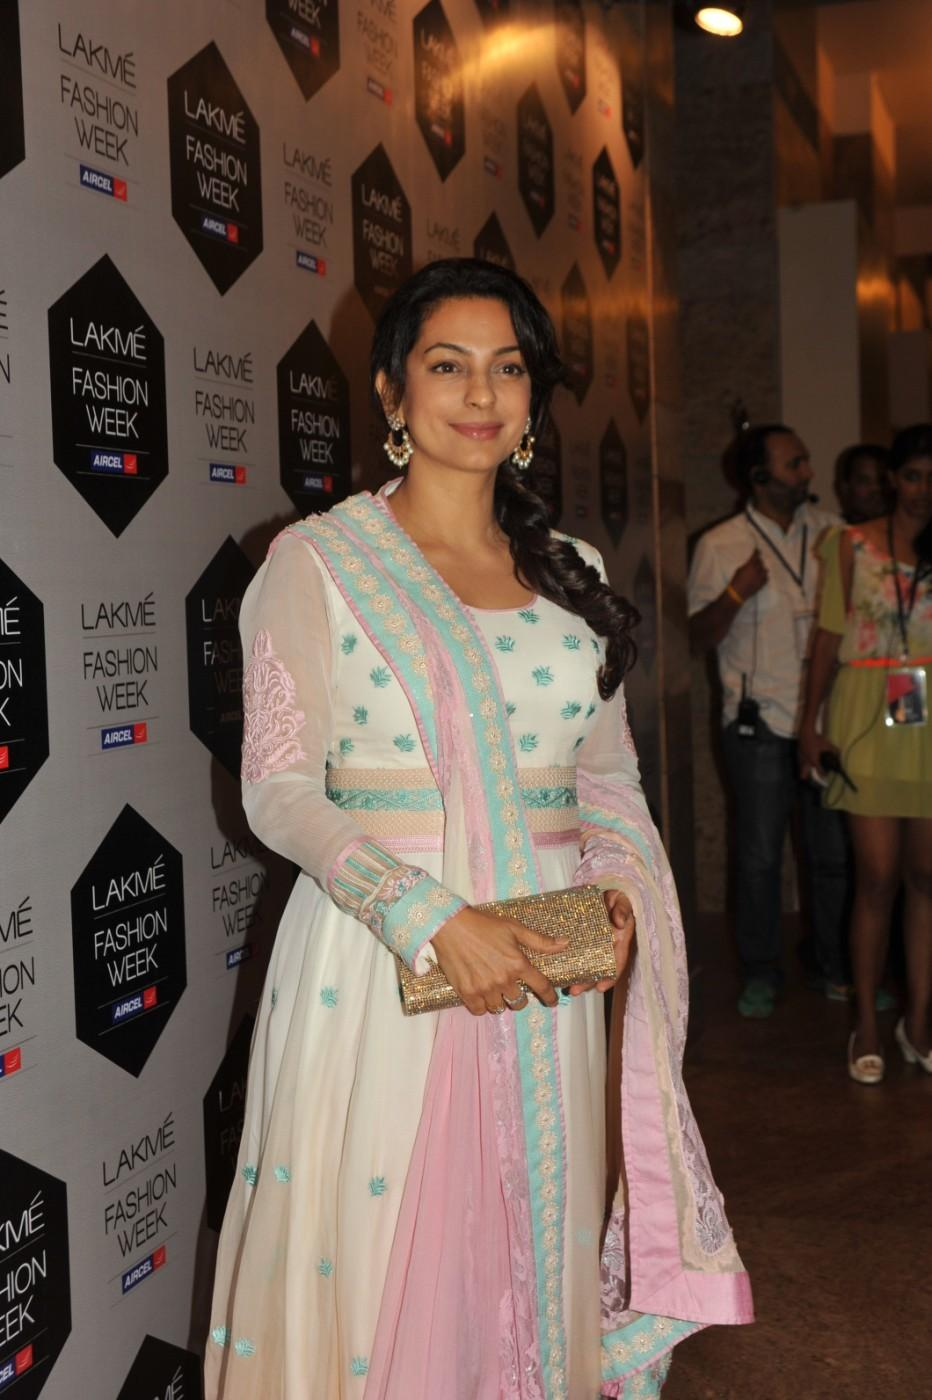 Juhi Chawla - Lakme Fashion Week 2012 Day 5 Photo